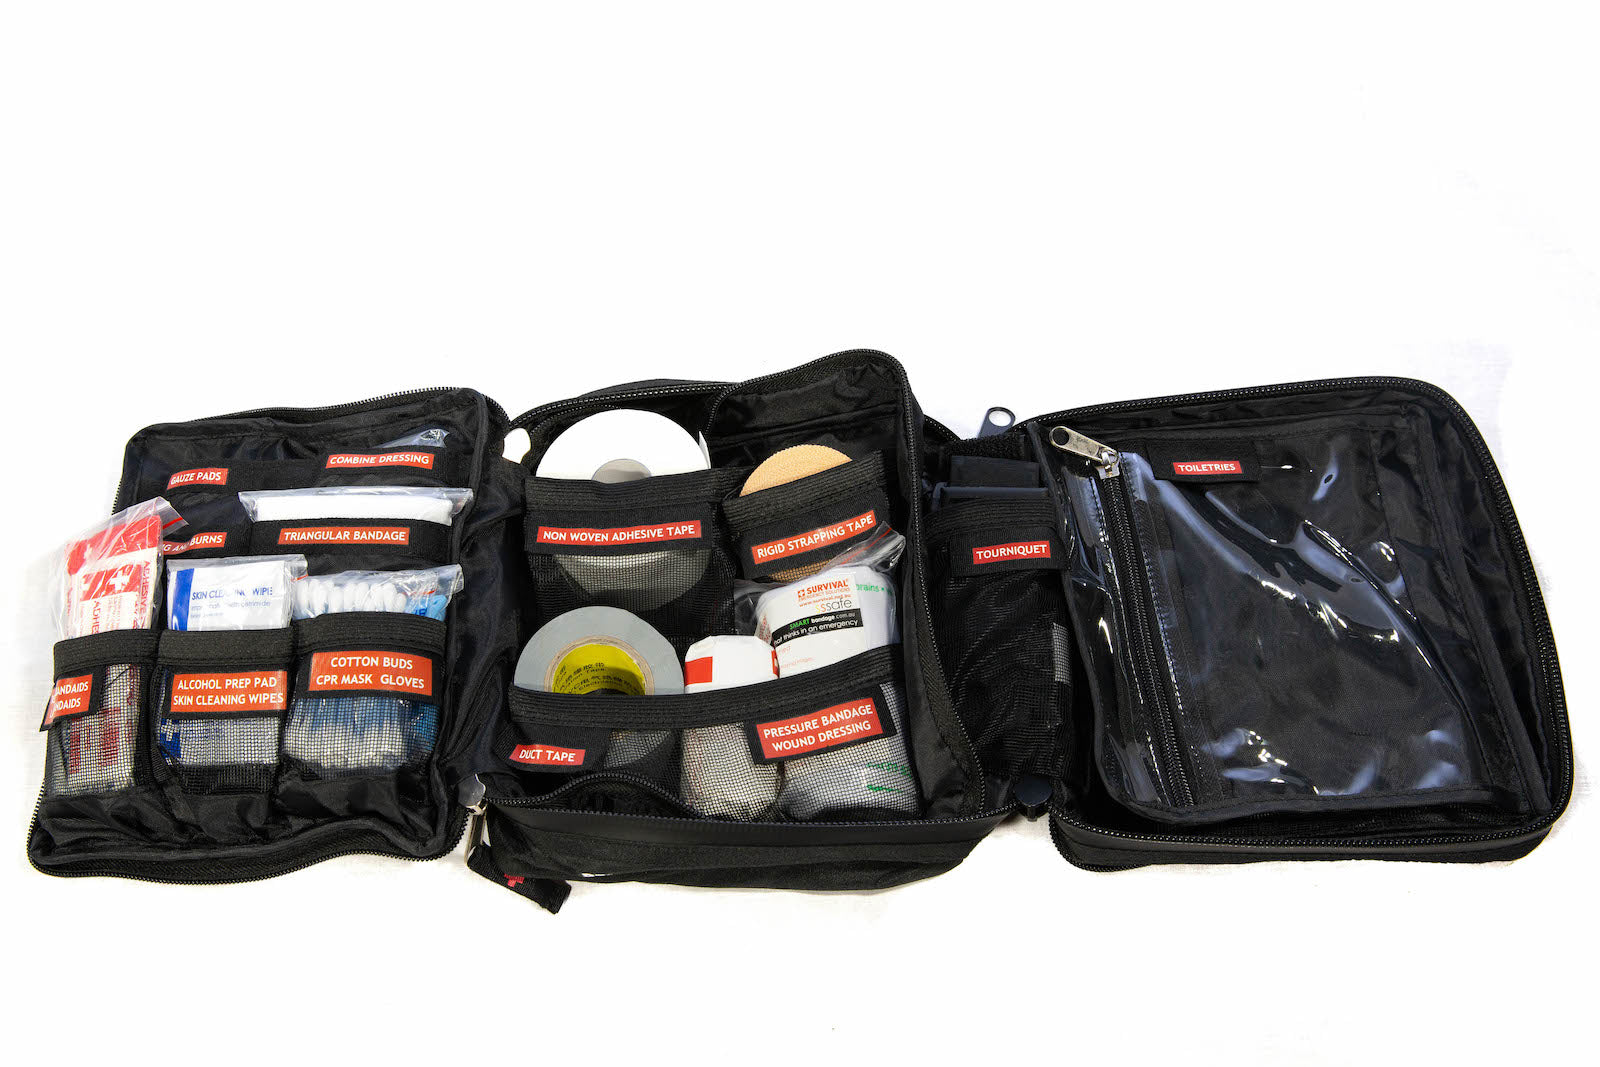 Surf Aid Kit (Introductory Offer) - A First Aid Kit For Surfers